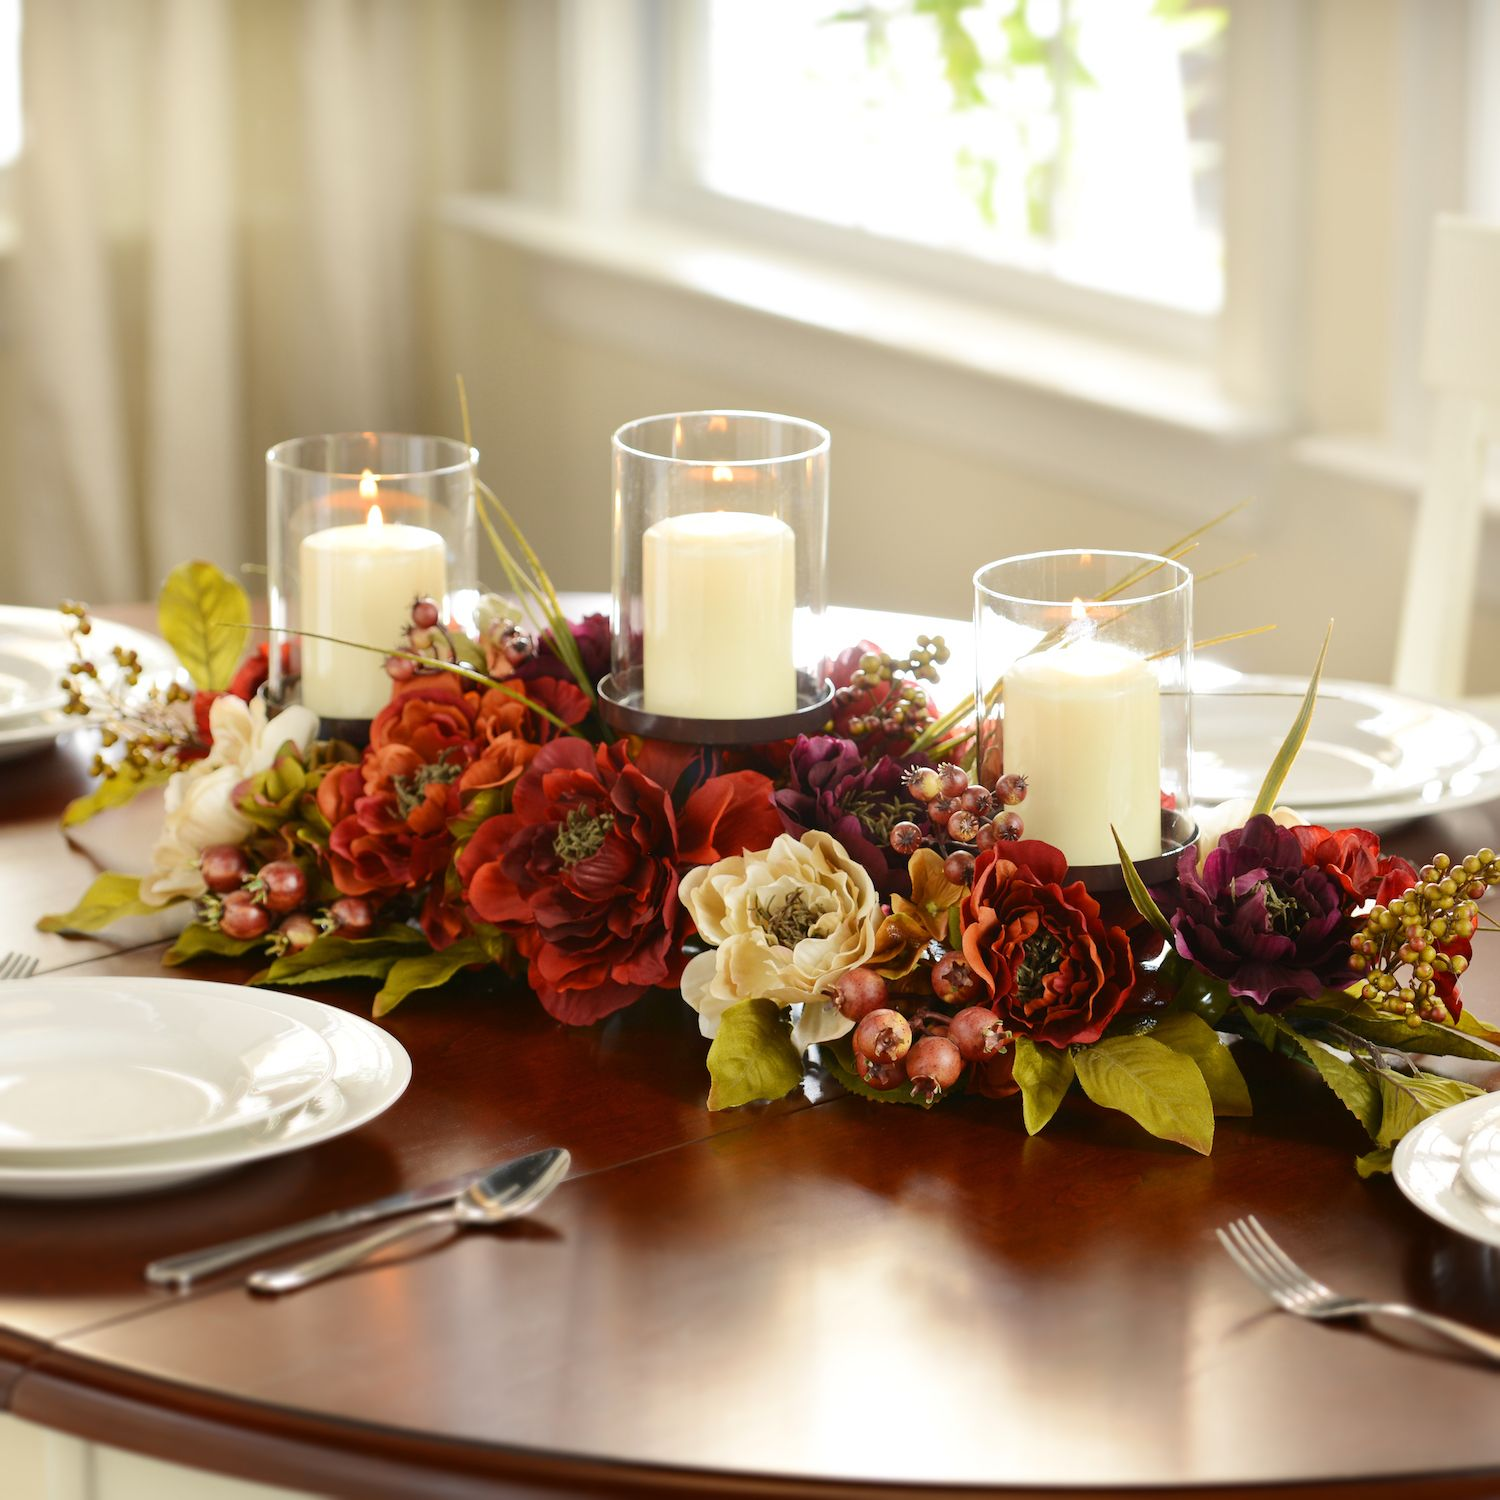 Find Your Center With Our Peony Candle Centerpiece The Combination Of Deep Pur Floral Candle Centerpieces Dining Room Table Centerpieces Candle Centerpieces